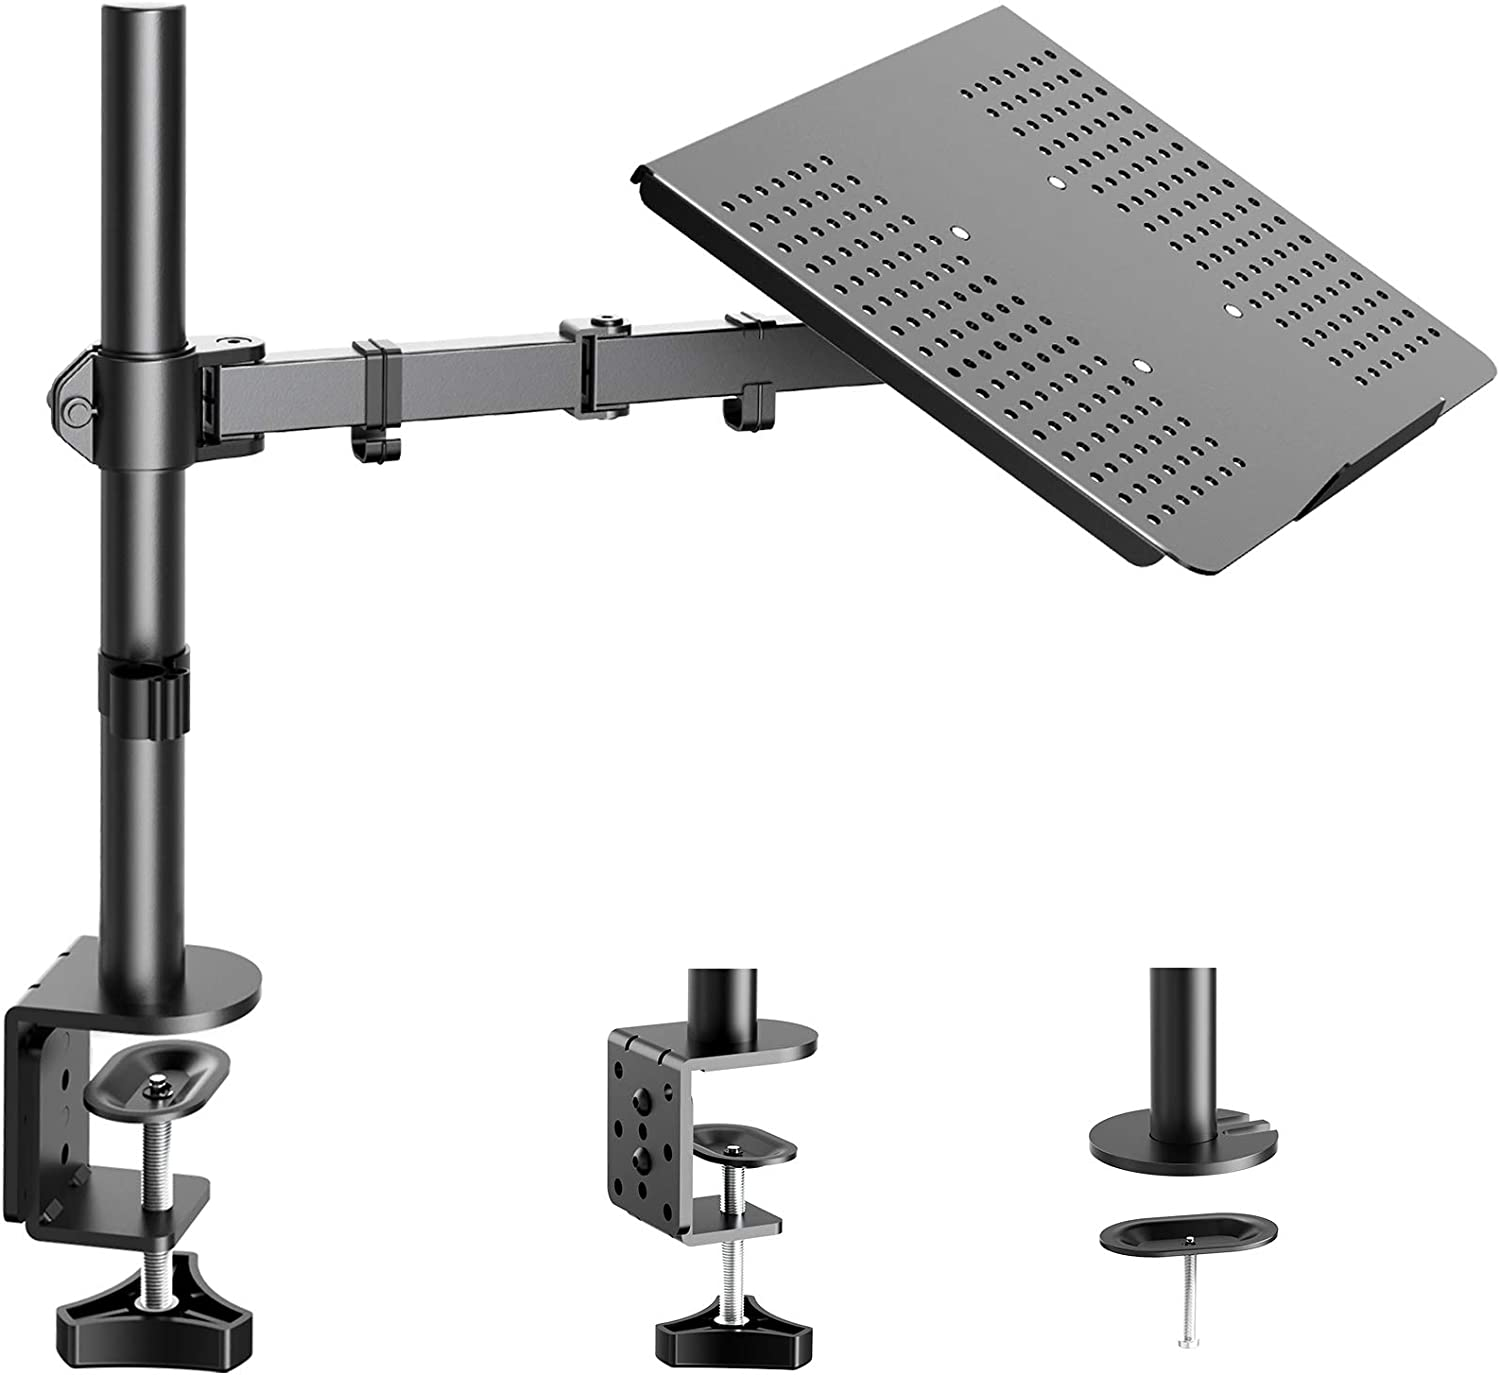 HUANUO Laptop New product Notebook Desk Mount Adjustable Sin Stand Height - Ranking TOP7